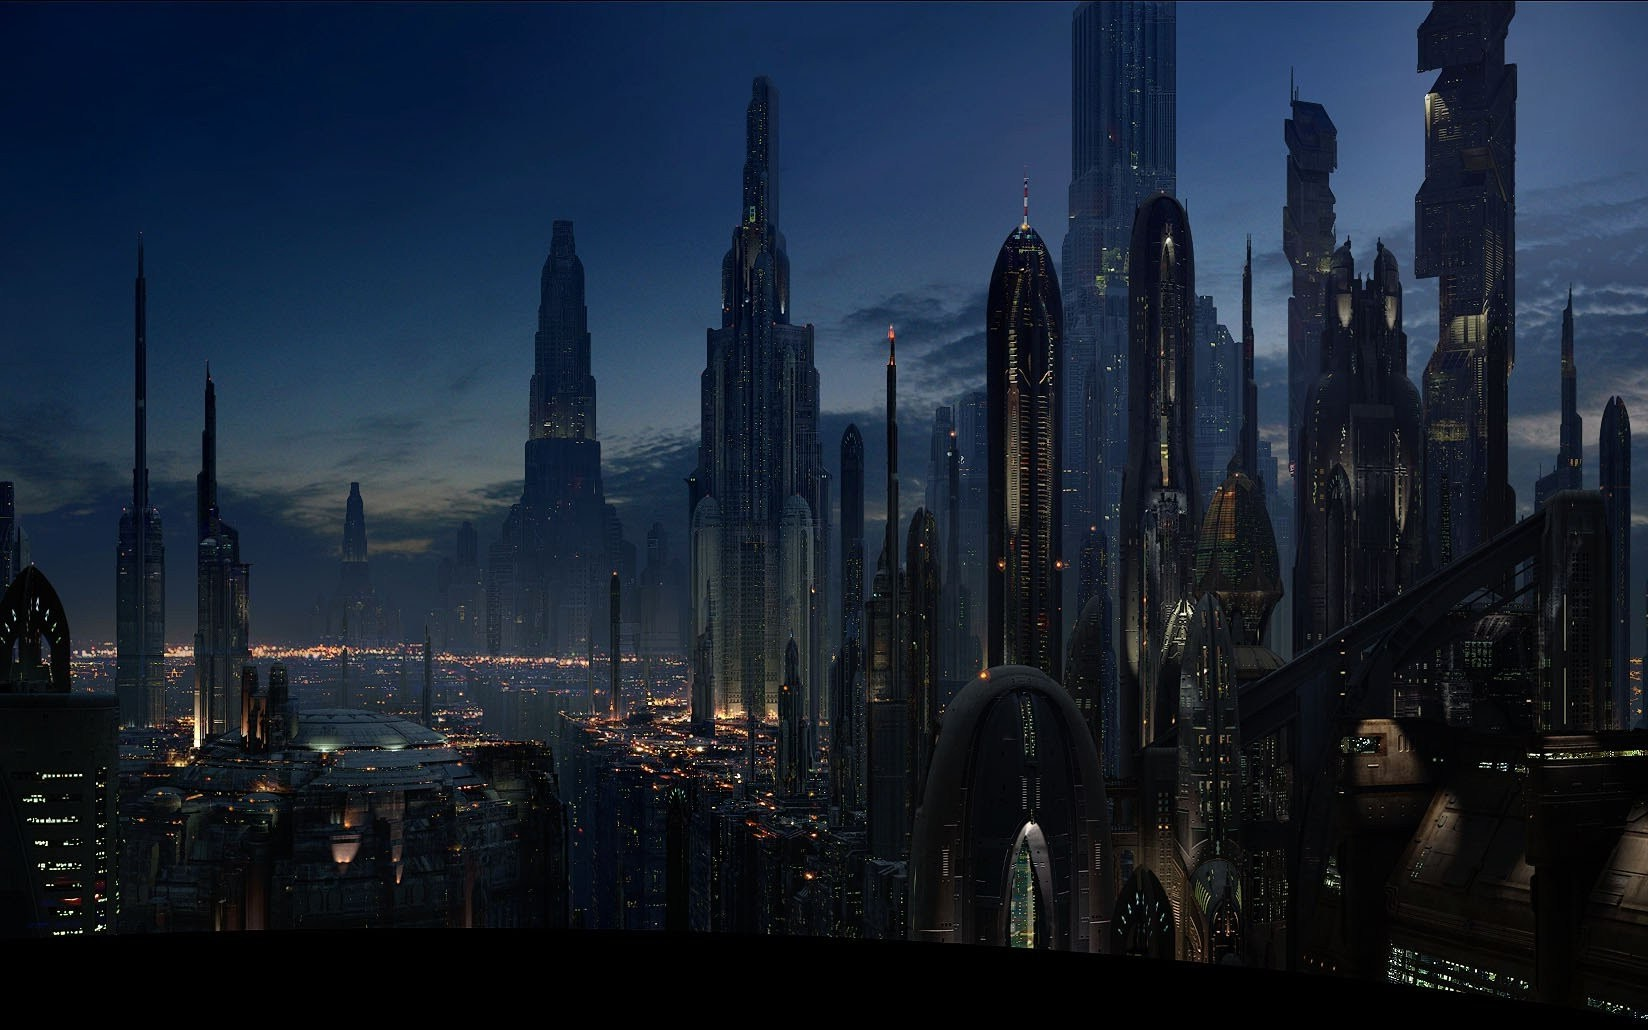 Computer Wallpaper For Teenage Girls Fantasy Art Coruscant Star Wars Futuristic Wallpapers